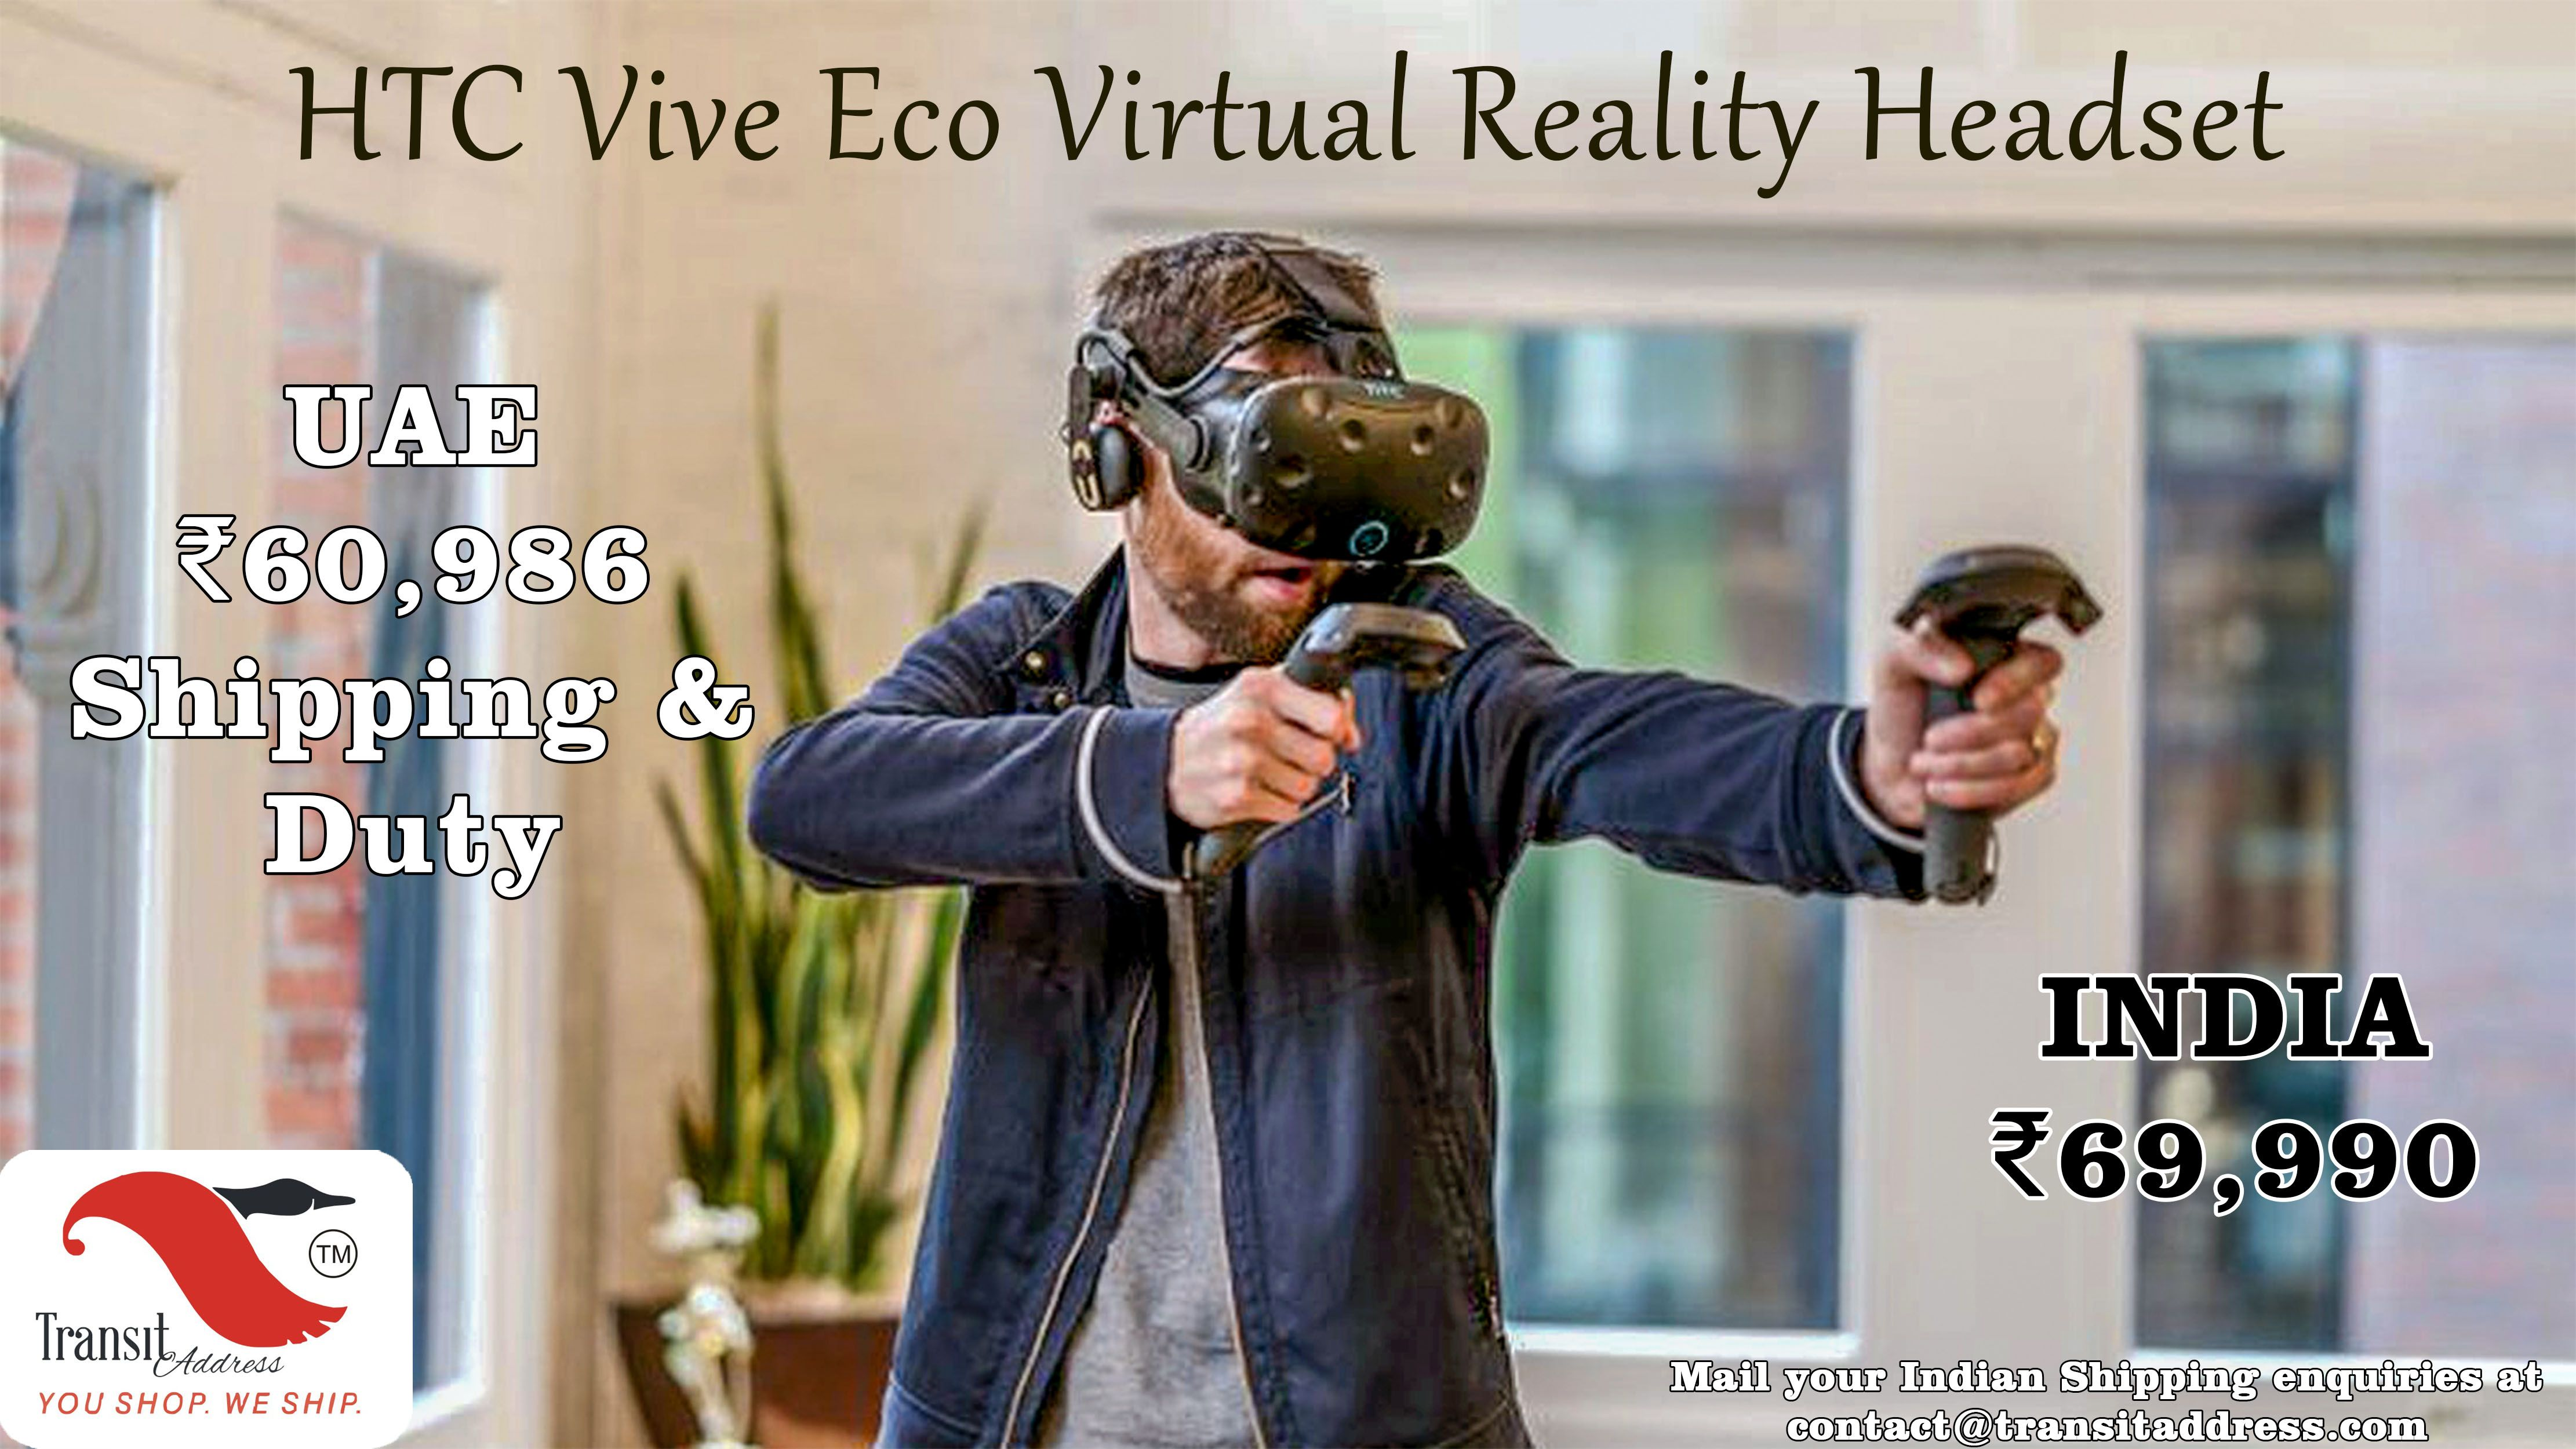 Love virtual gaming? Grab the best deals on virtual reality gaming